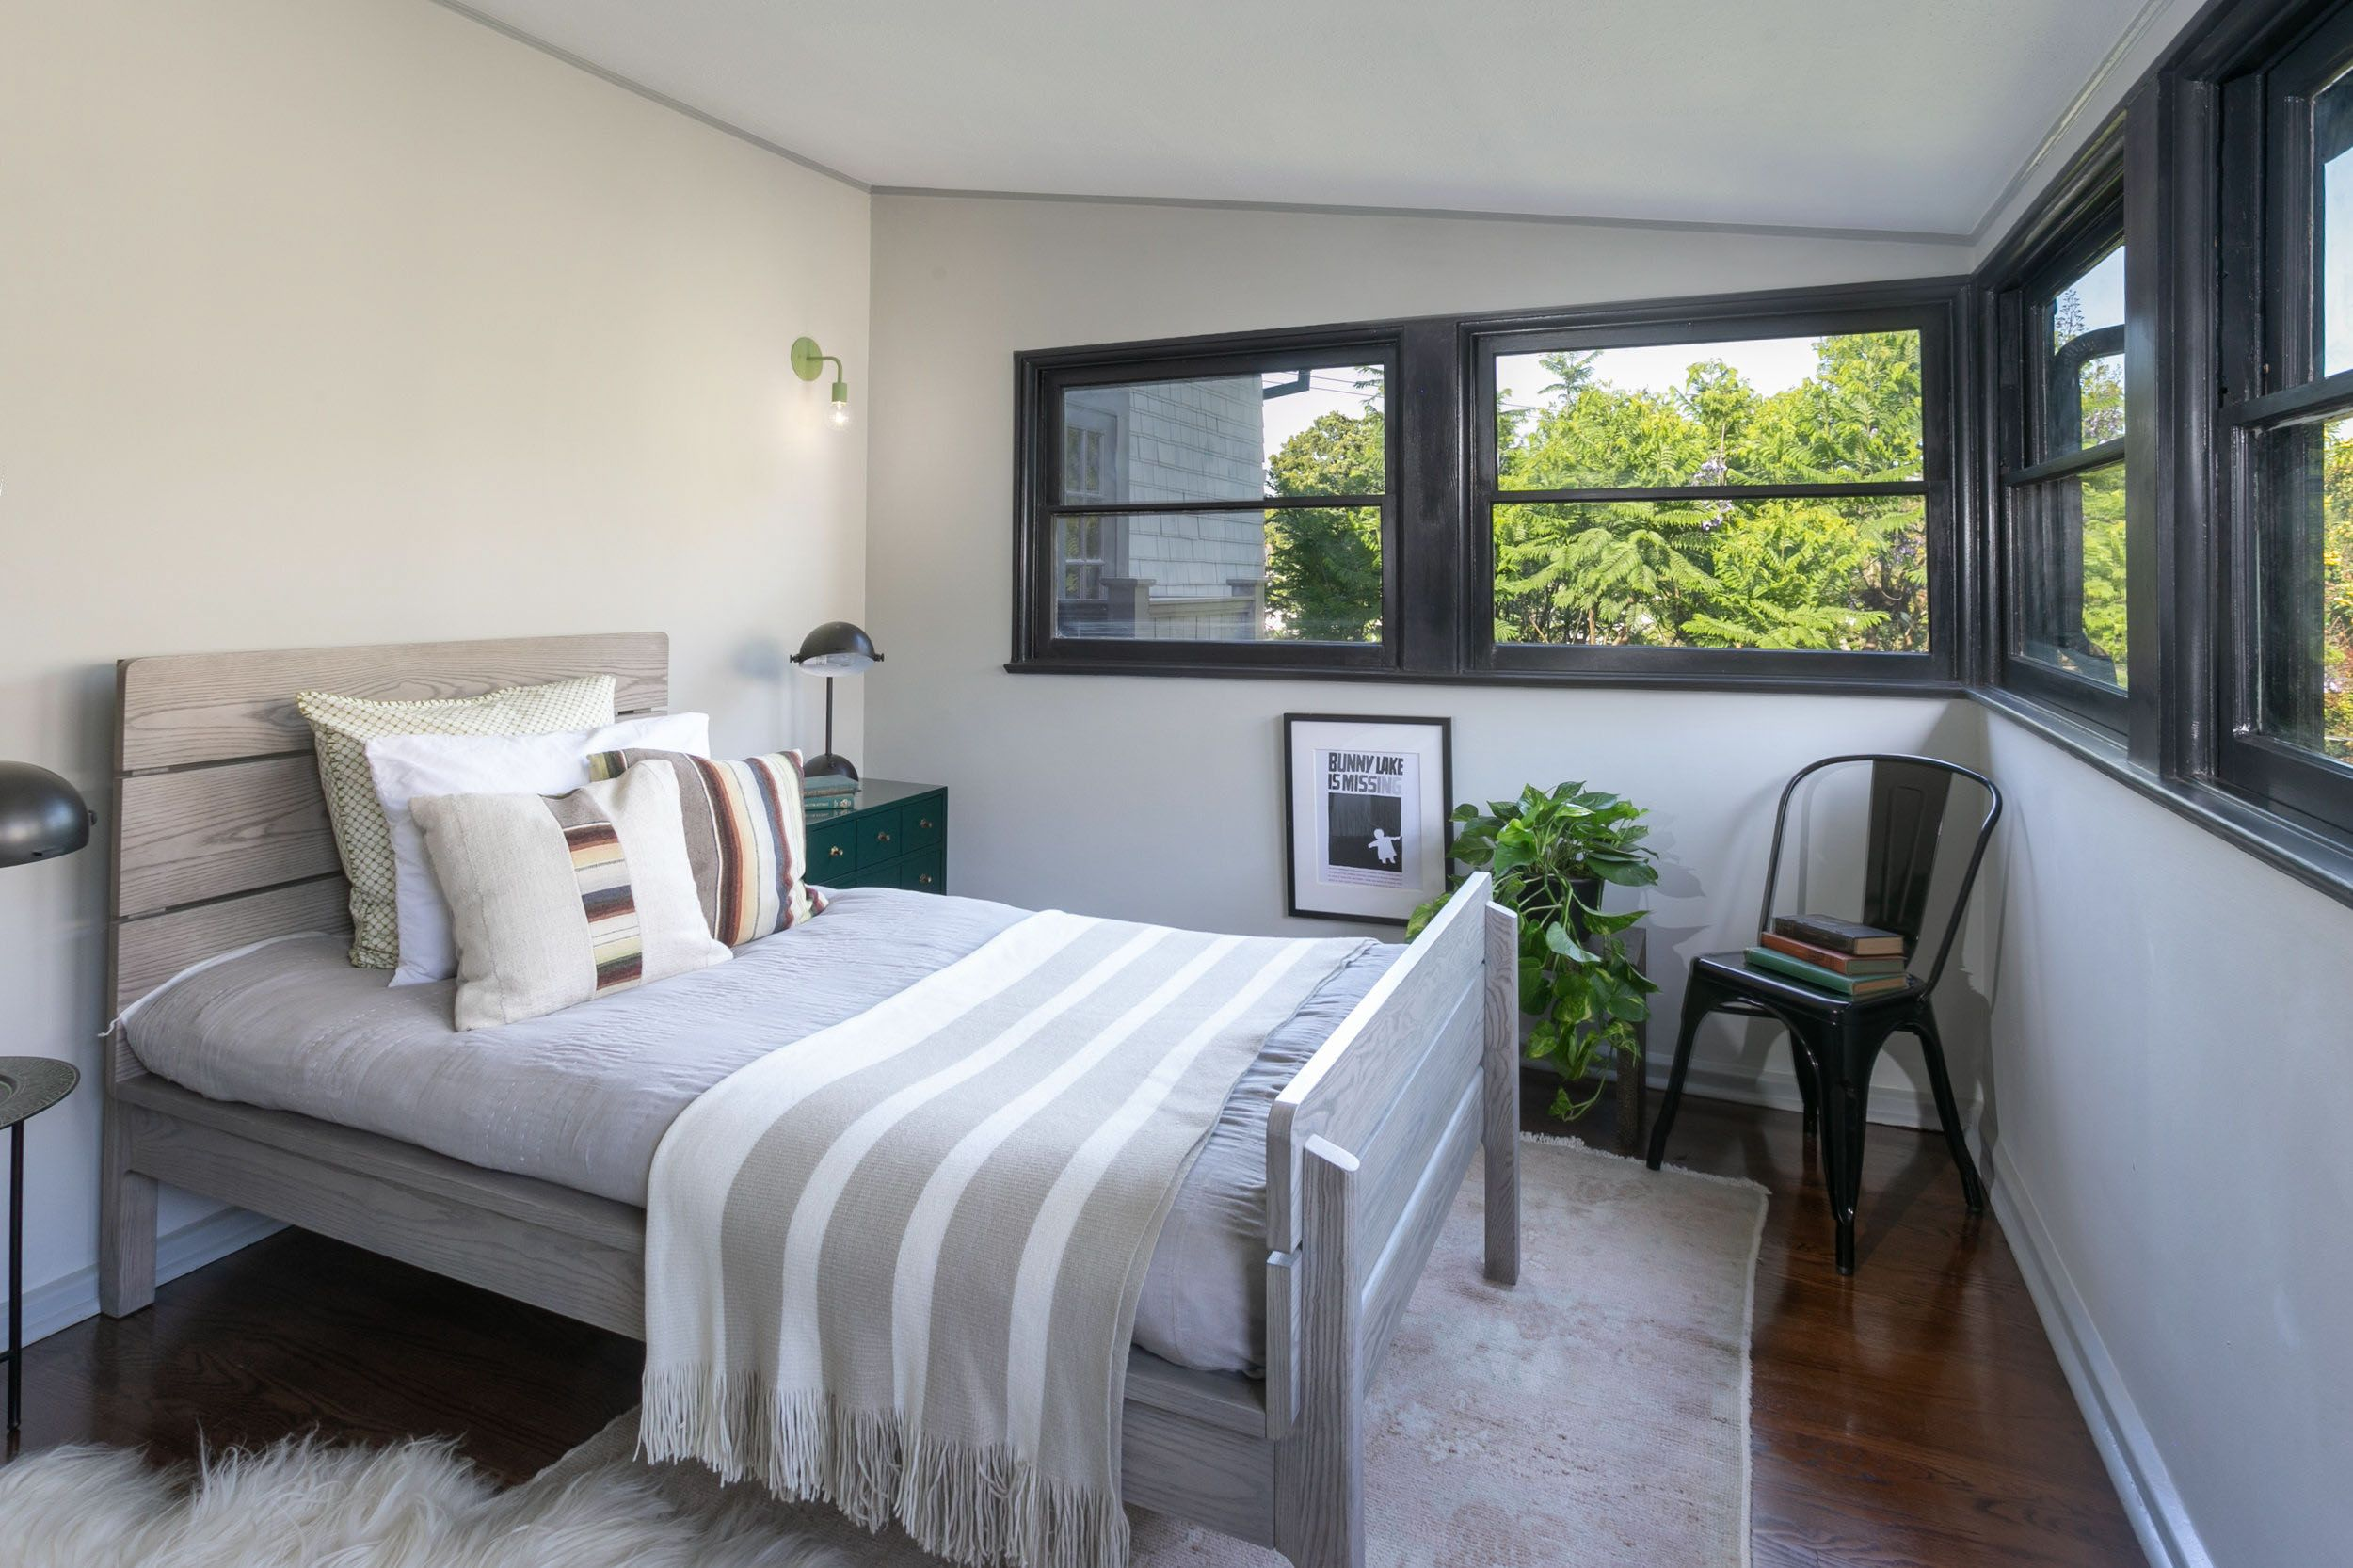 Guest Bedroom 2 Windsor Square - Los Angeles, Ca Offered